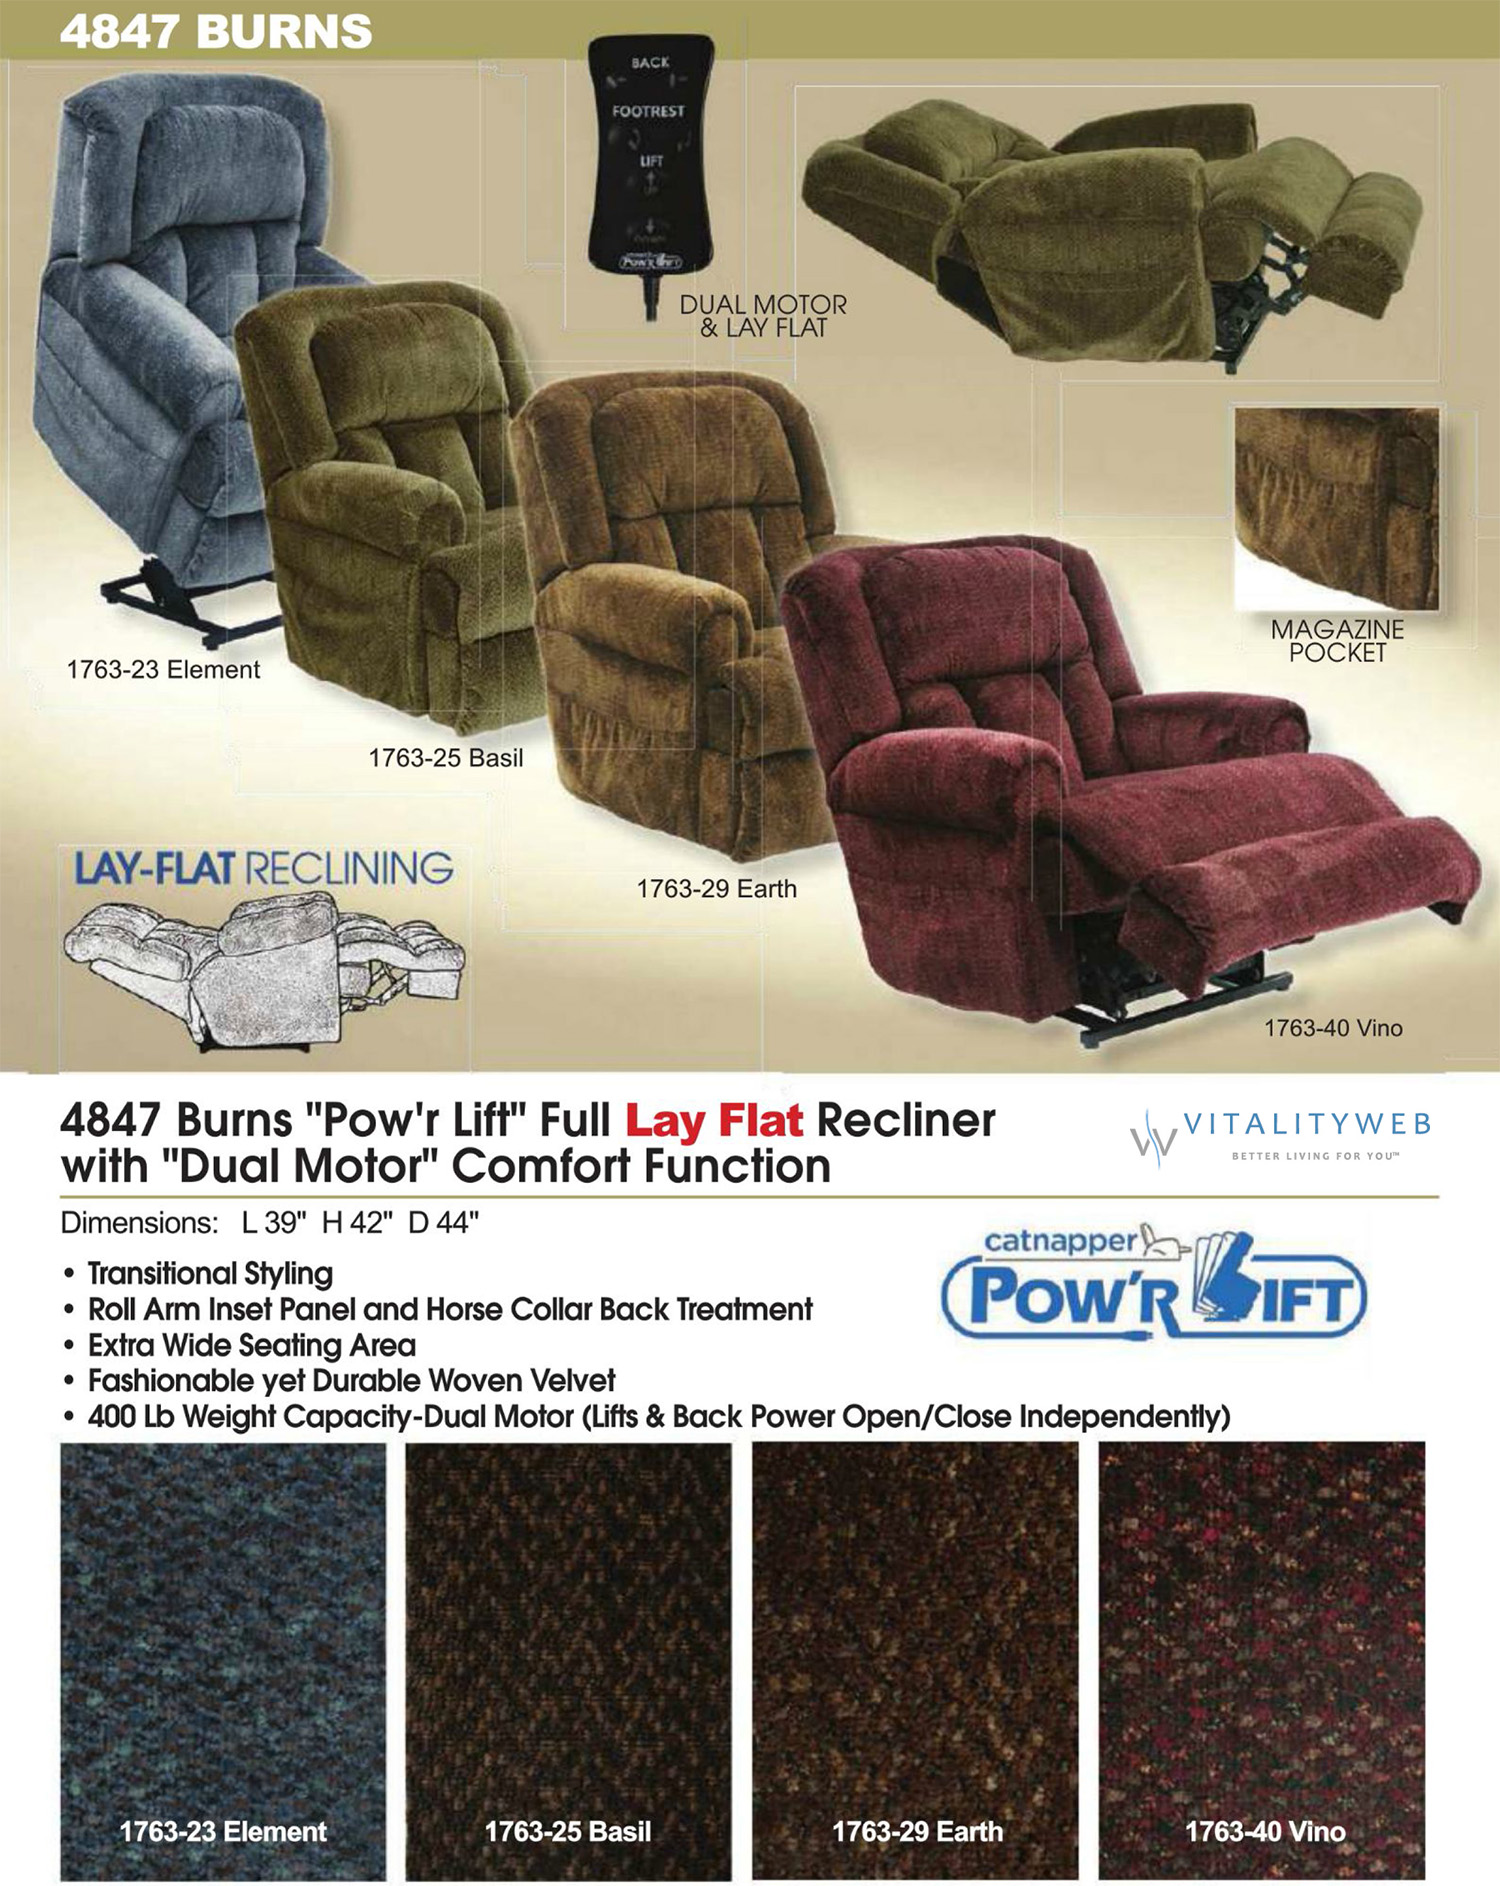 Catnapper Burns 4847 Dual Motor Lift Chair Recliner Information & Catnapper Burns 4847 Dual Motor Power Lift Chair Recliner to 400lbs islam-shia.org